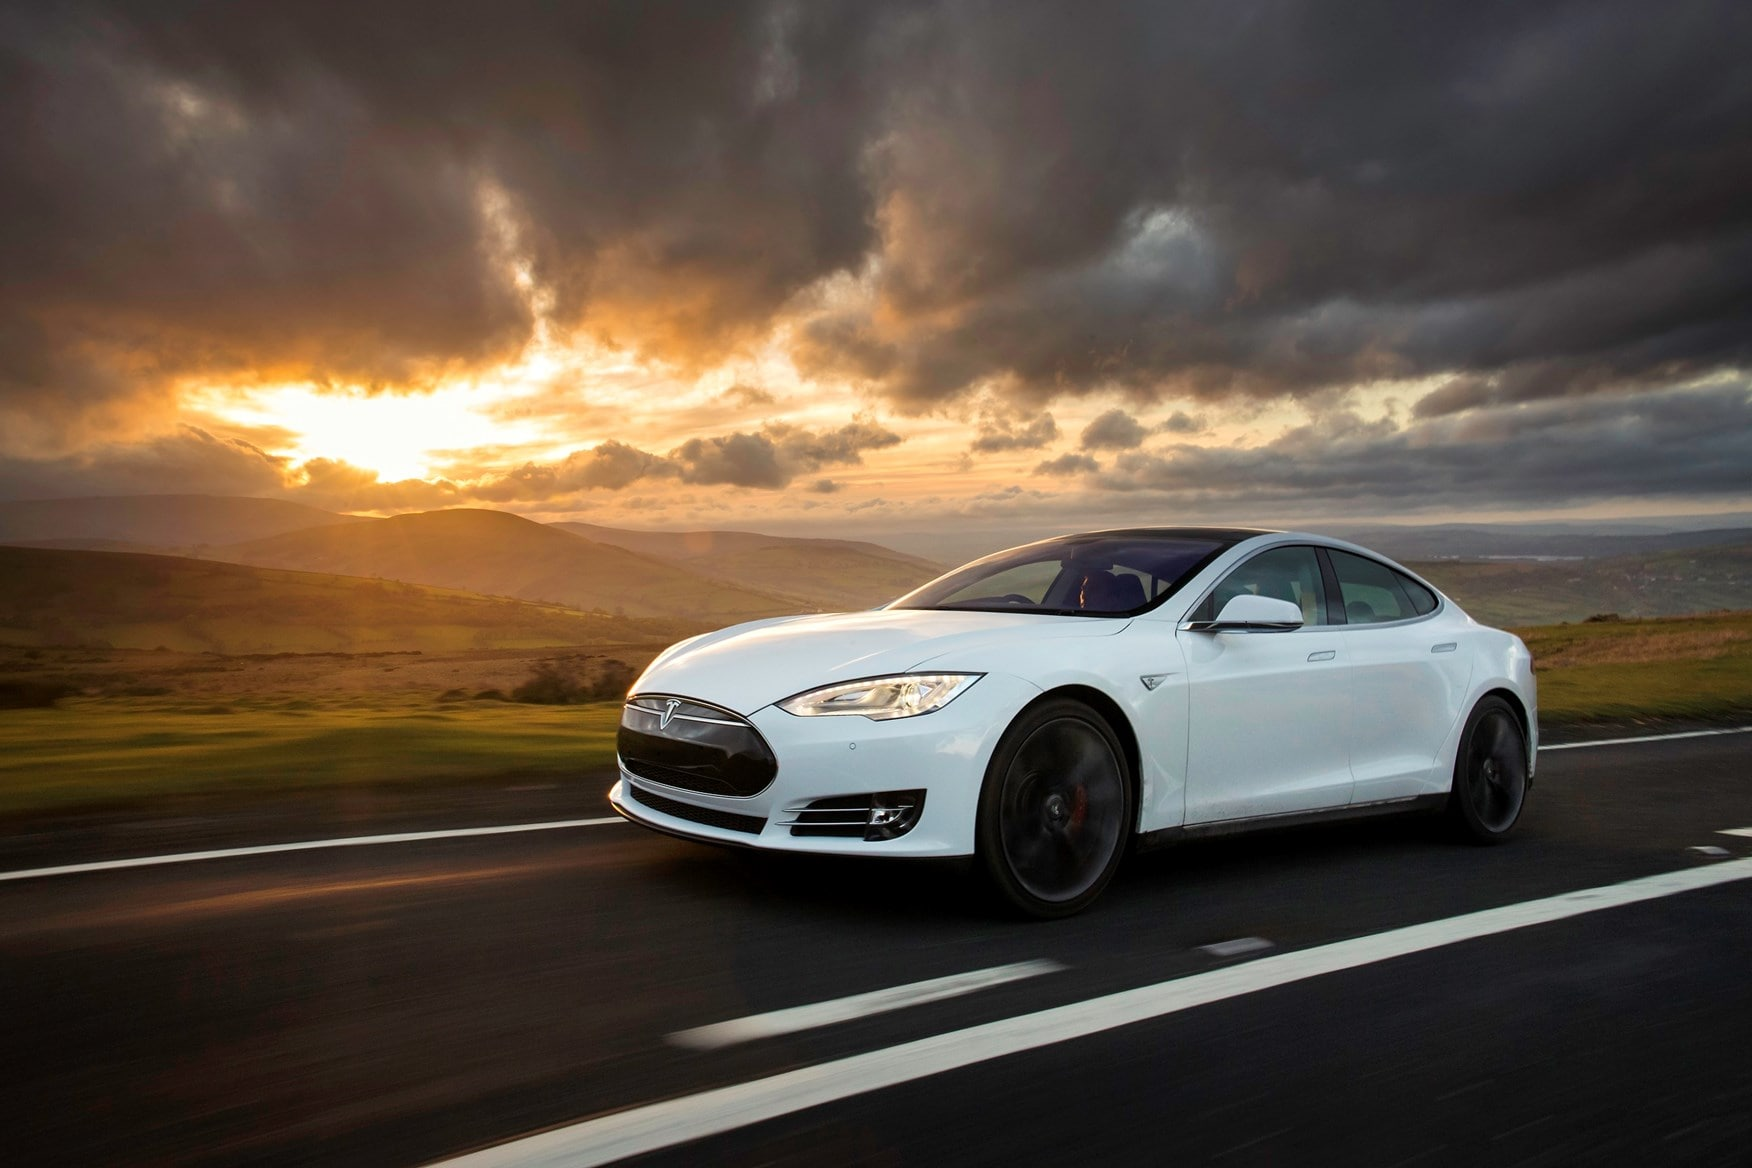 Tesla Model S Full hd wallpapers